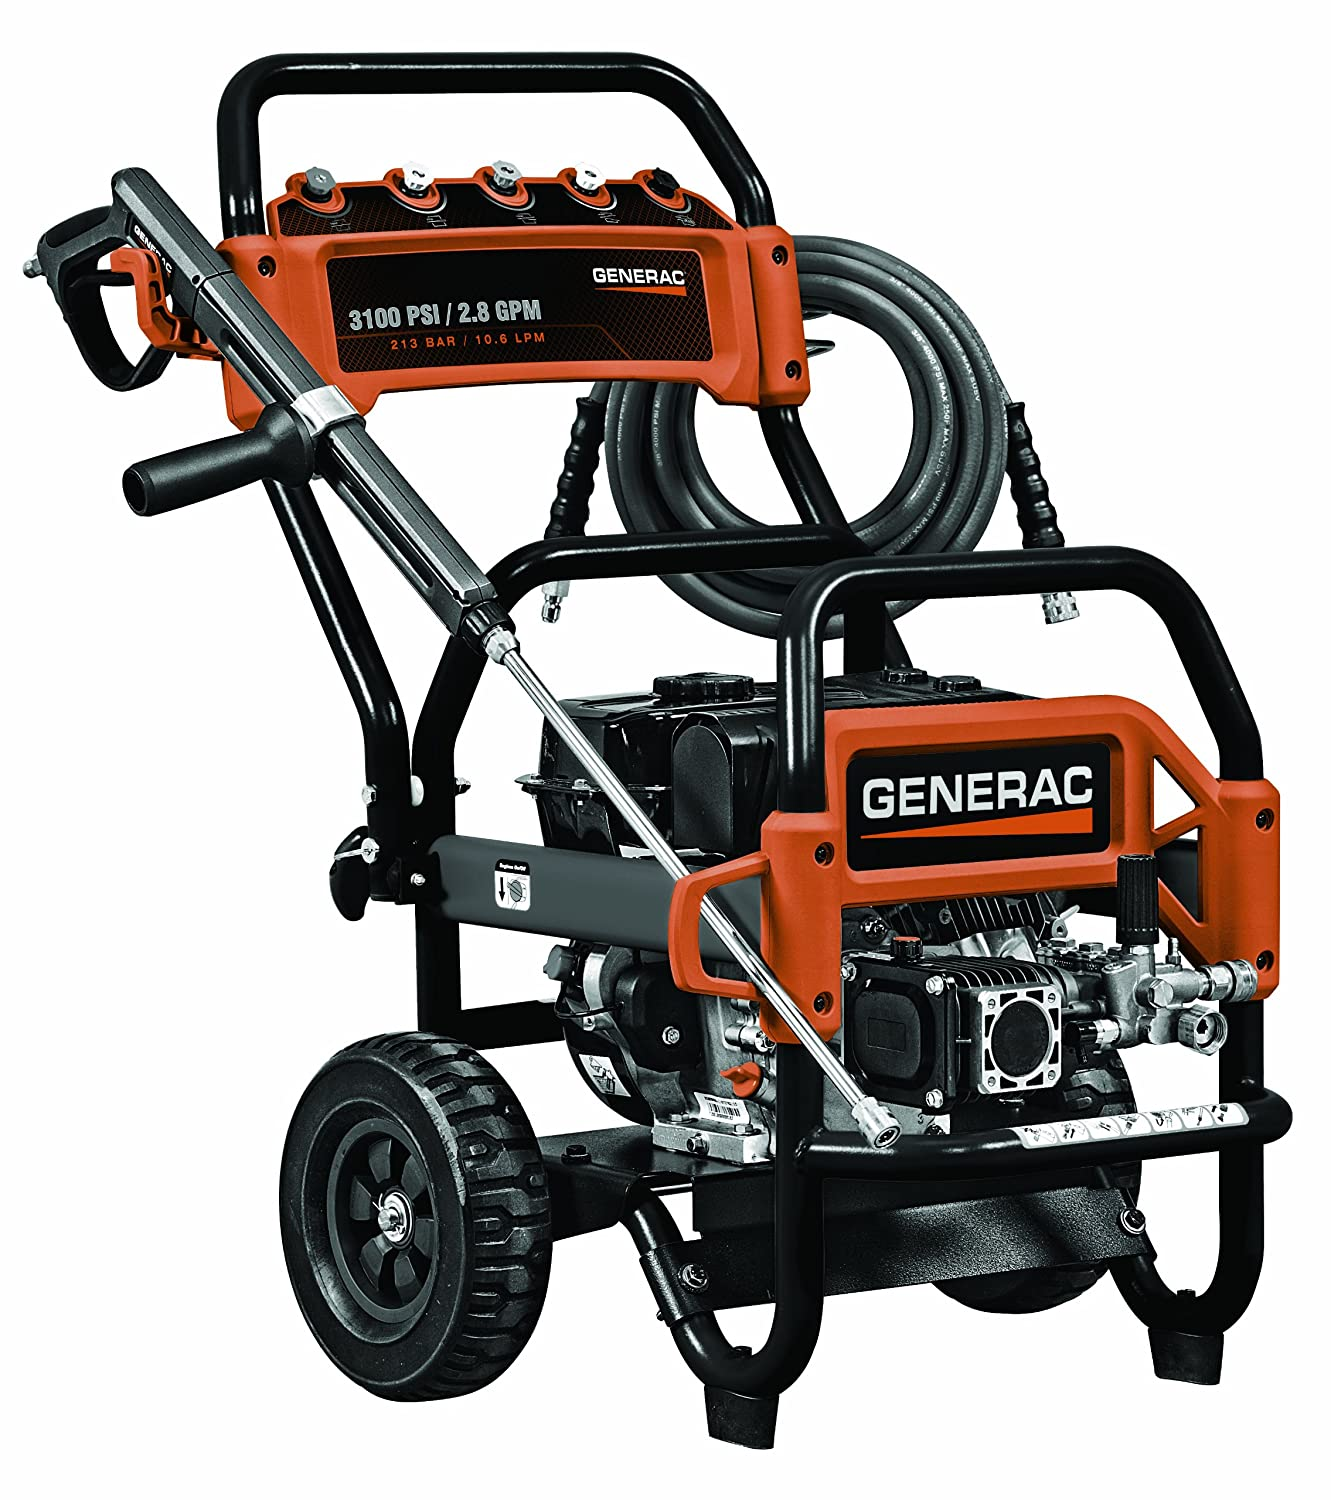 Commercial Pressure Washer ReviewsBest Pressure Washer